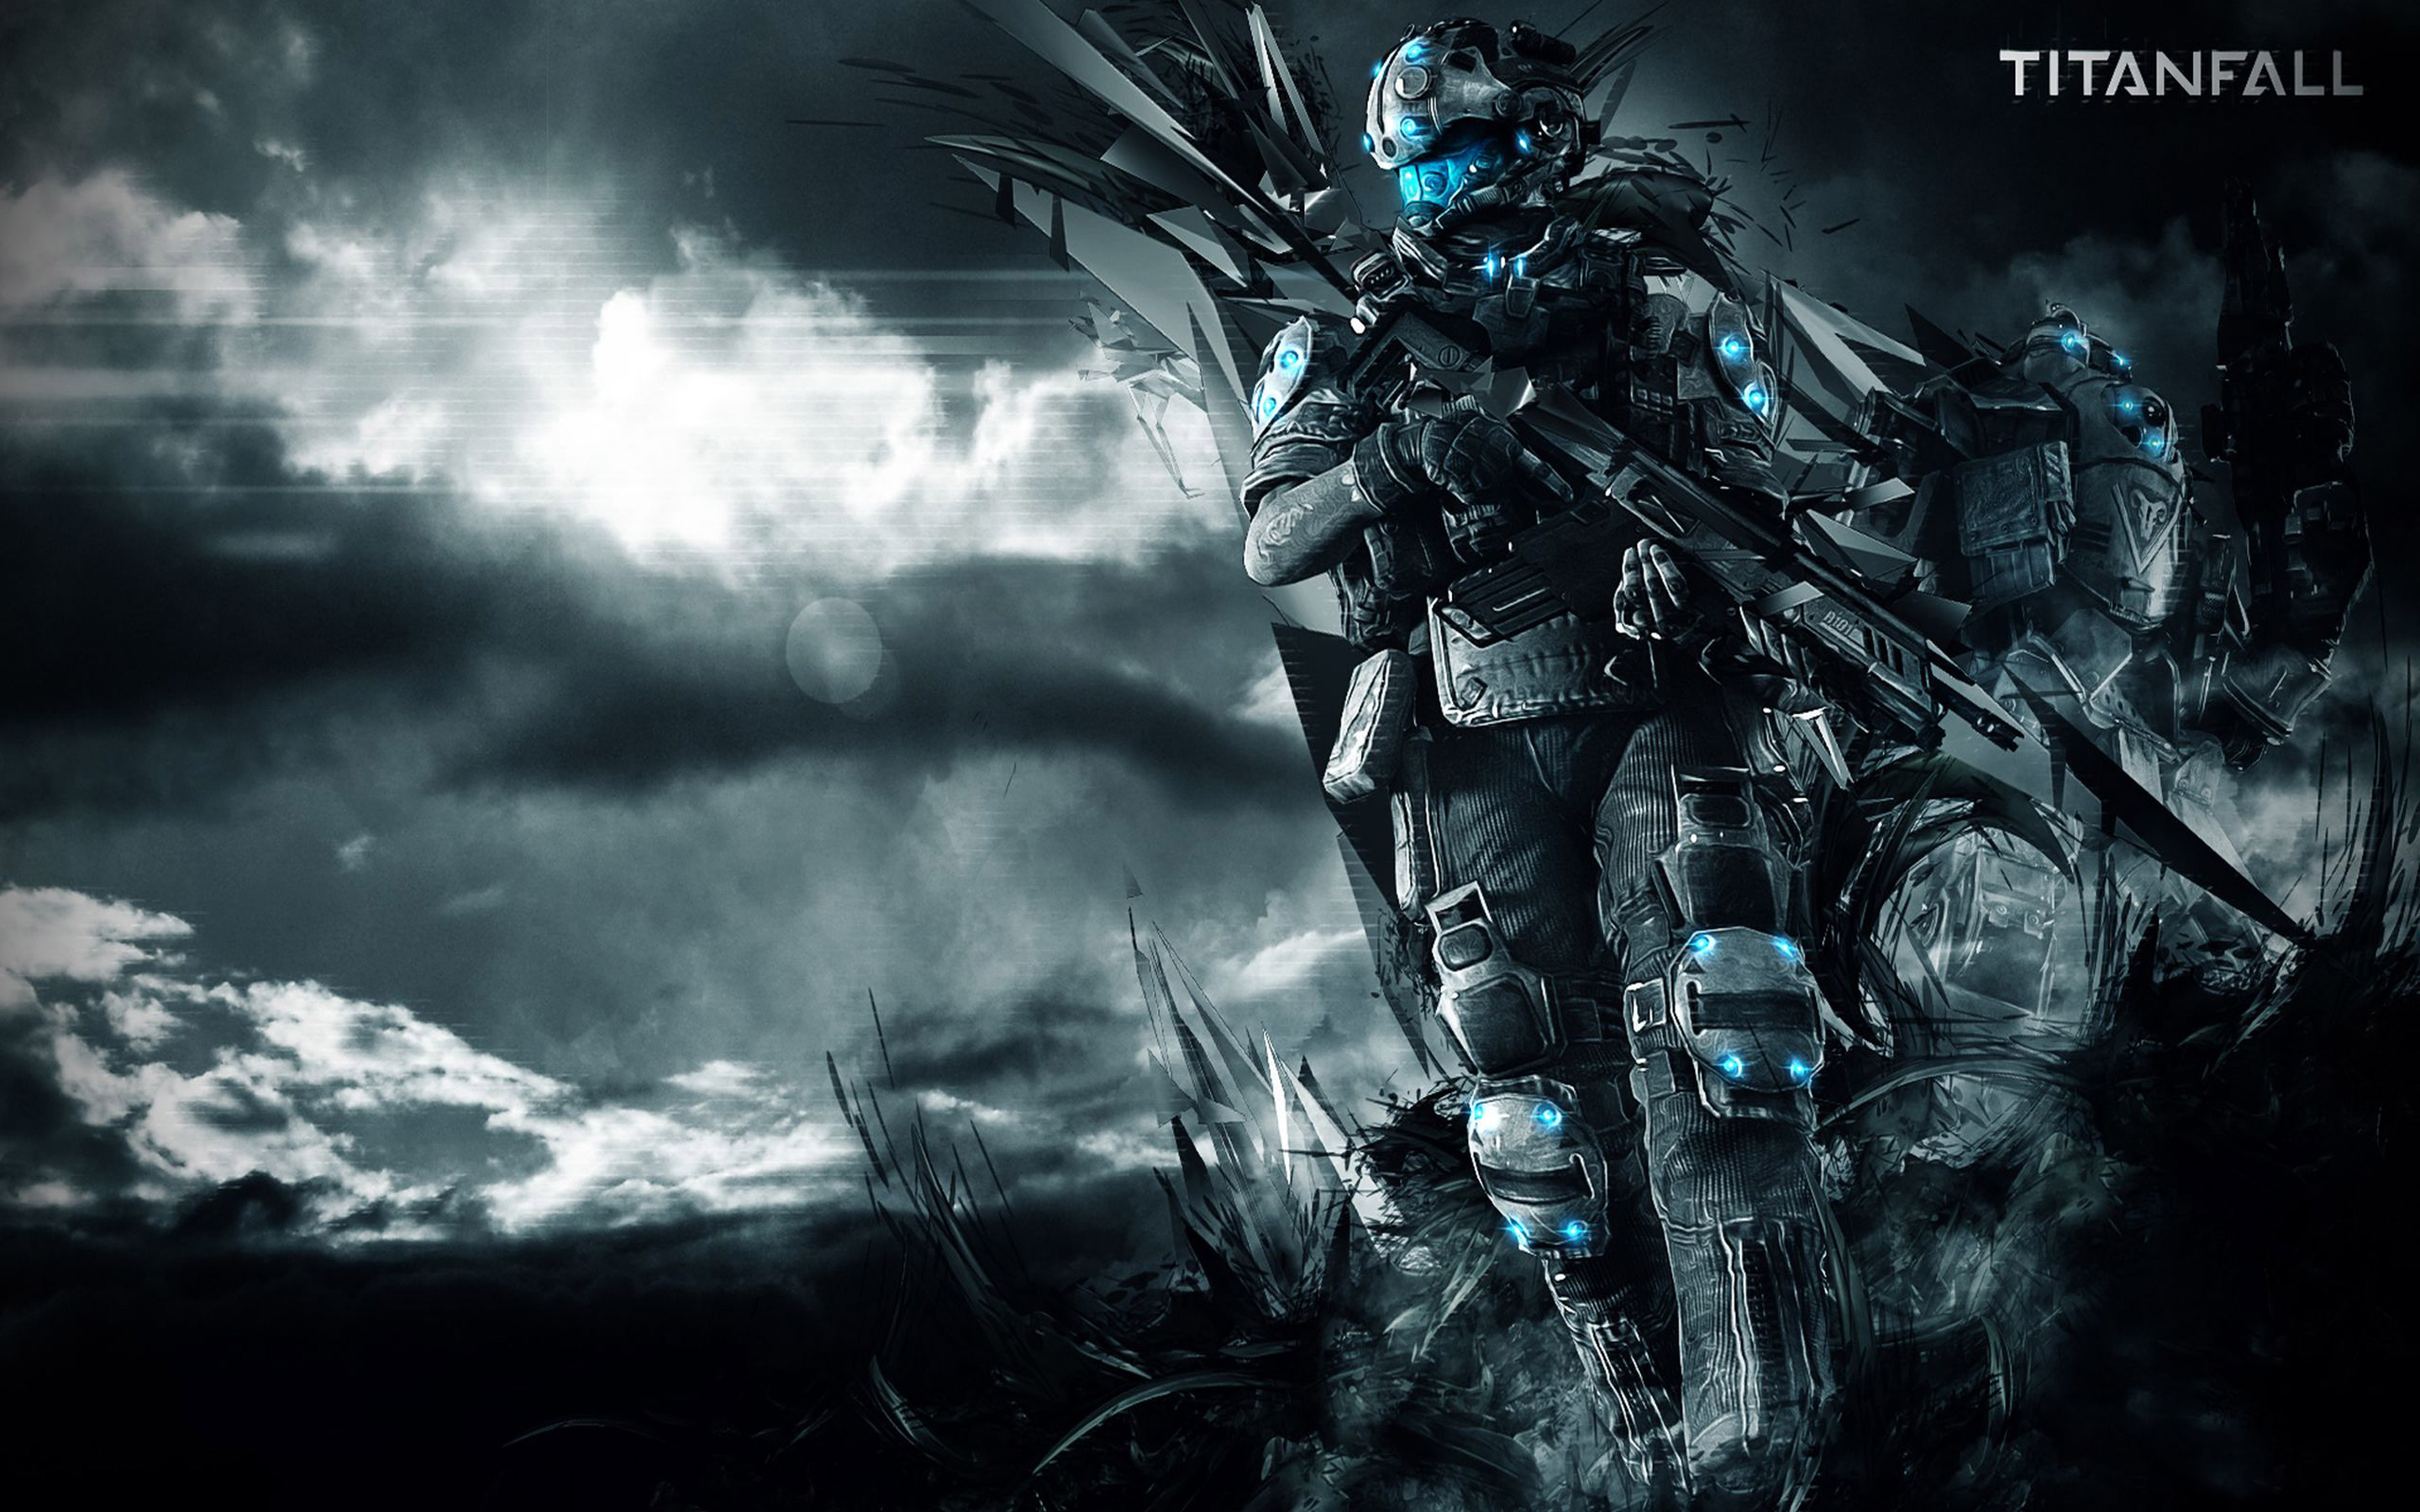 Titanfall Soldier Wallpaper in High Resolution at Games Wallpaper 2880x1800